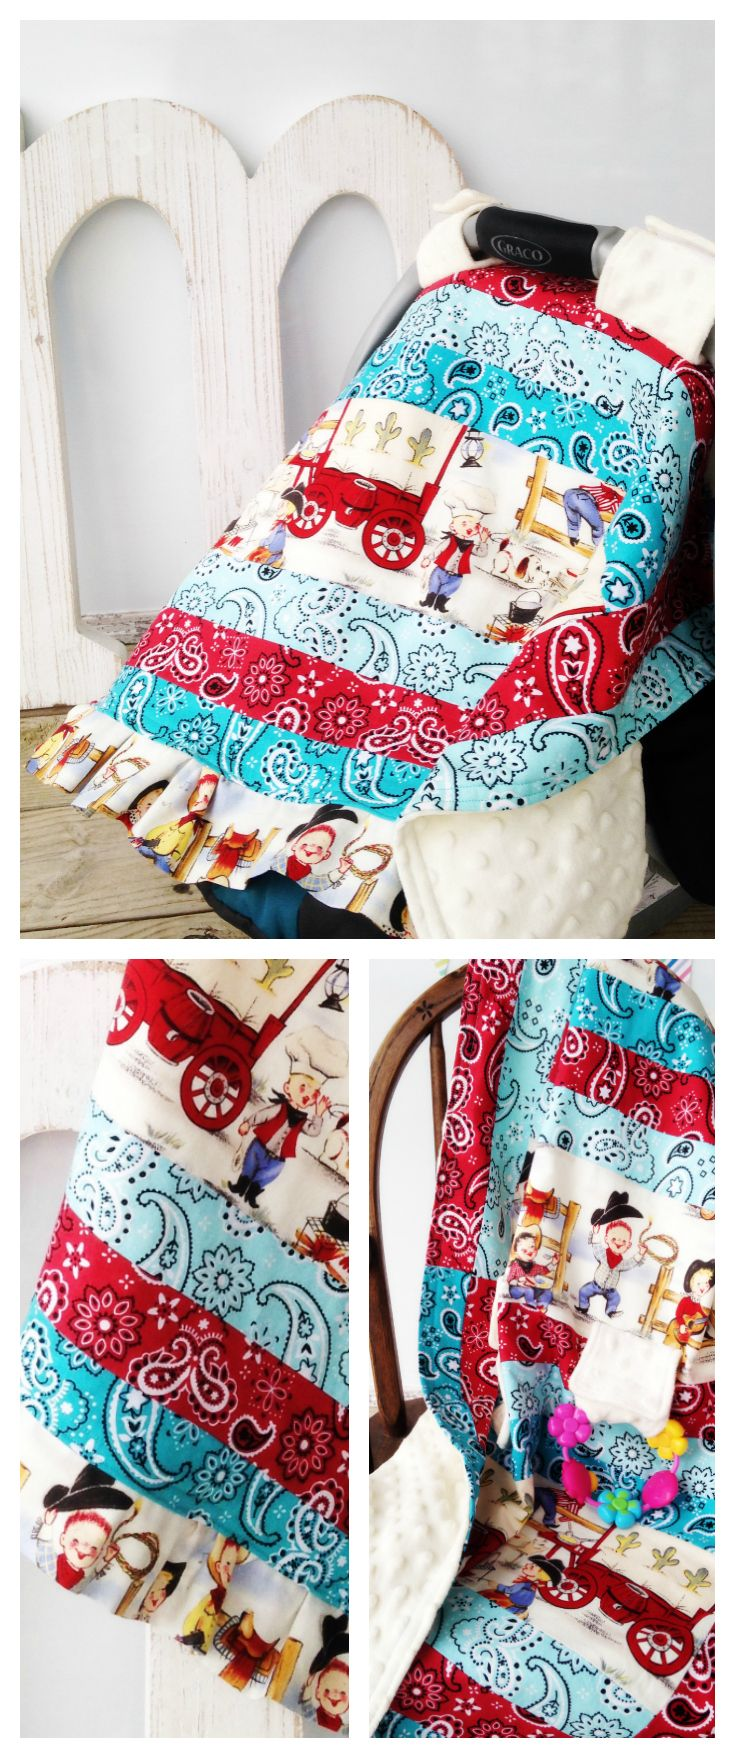 Toddler Teething Quilt & Car Seat Cover, Retro Vintage Cowboy Nursery, Baby Boy, Blue Red Aqua Teal Bandana, Covered Wagon, Lasso, Horse, Toddler Bedroom Theme, Minky Crib Bedding Blanket, Canopy, Shower Gift | by Missy Prissy Shop, $37.00